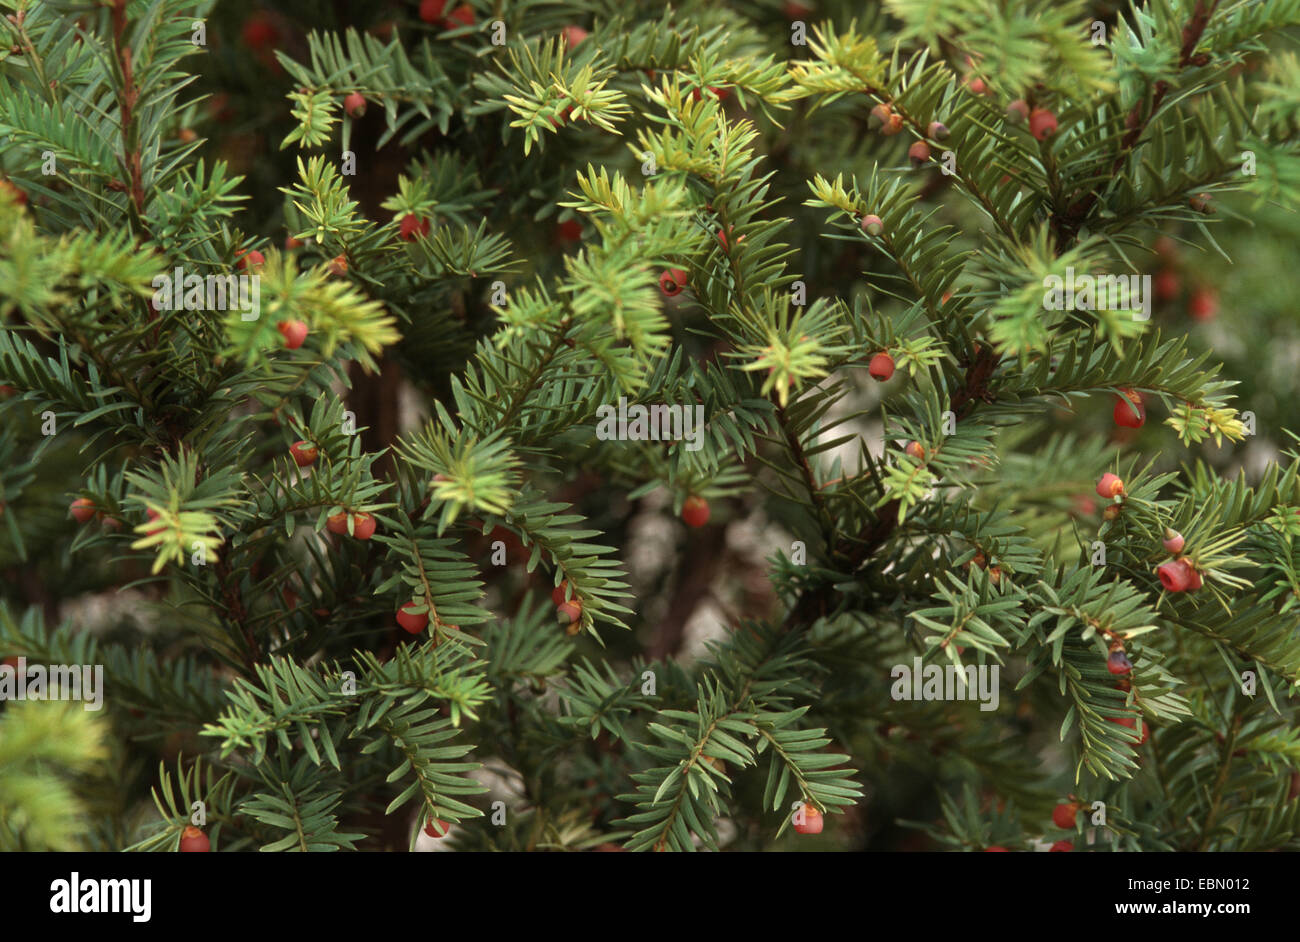 western yew, pacific yew (Taxus brevifolia), branches with seeds, is used against cancer - Stock Image